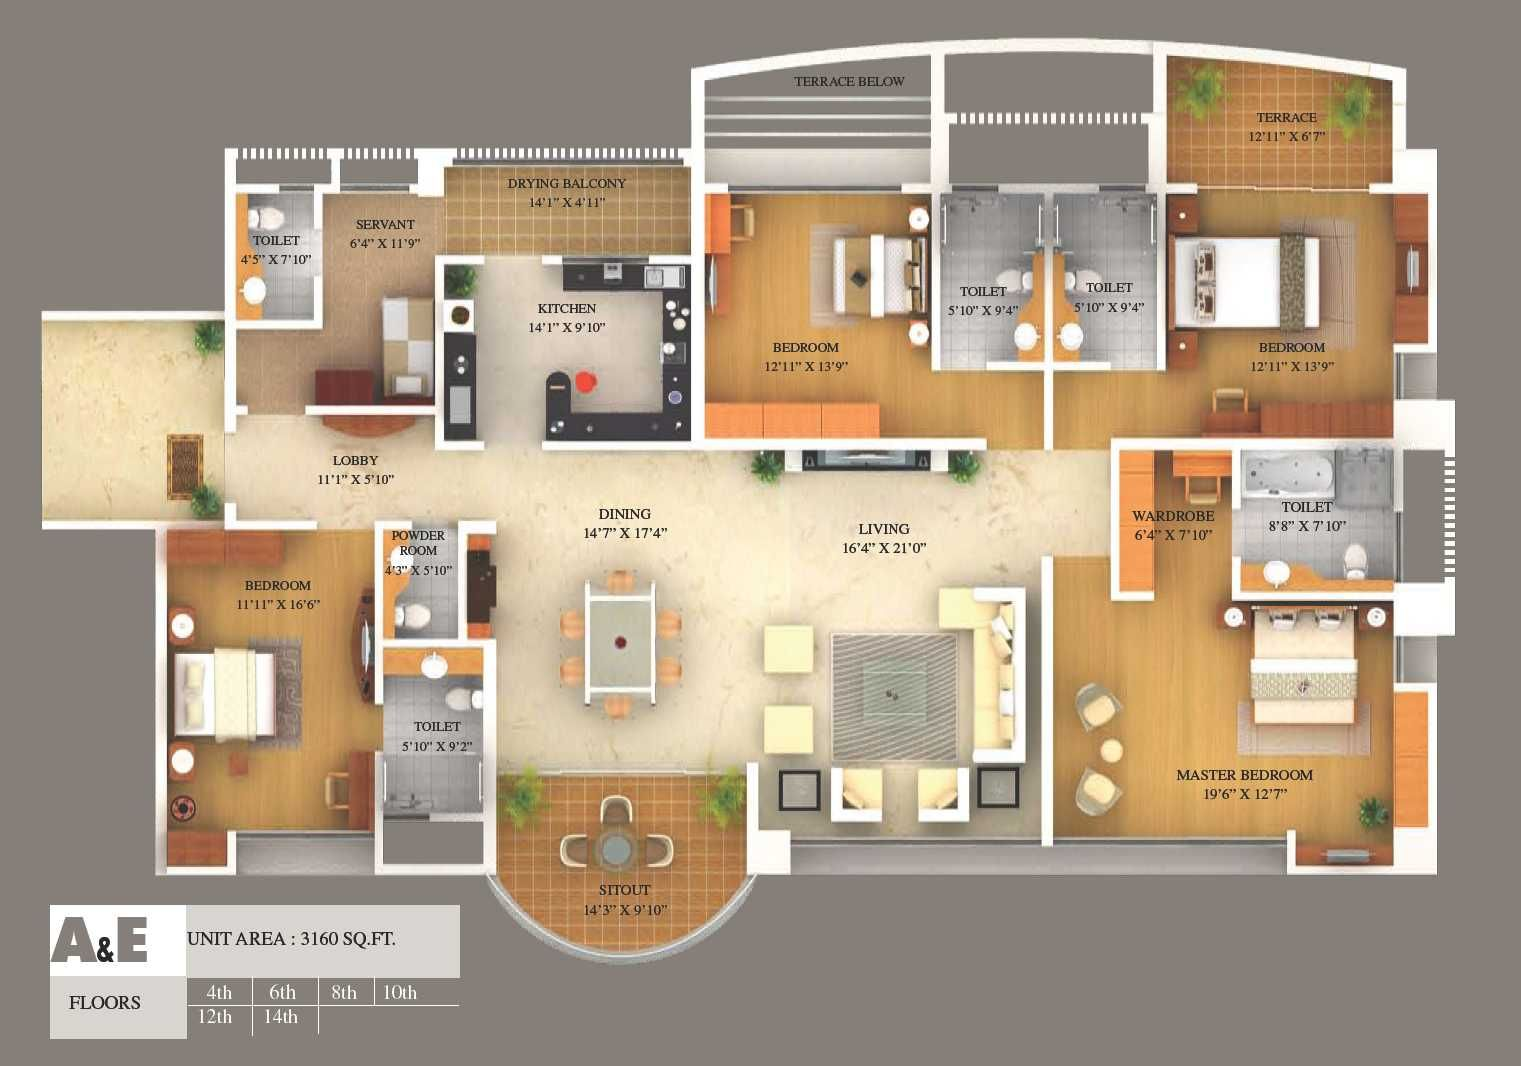 Simple House Plan With 5 Bedrooms 3d Images Home Design Maker Extraordinary More Bedroom Floor Plans Online Home Design Floor Plan Design Home Design Software